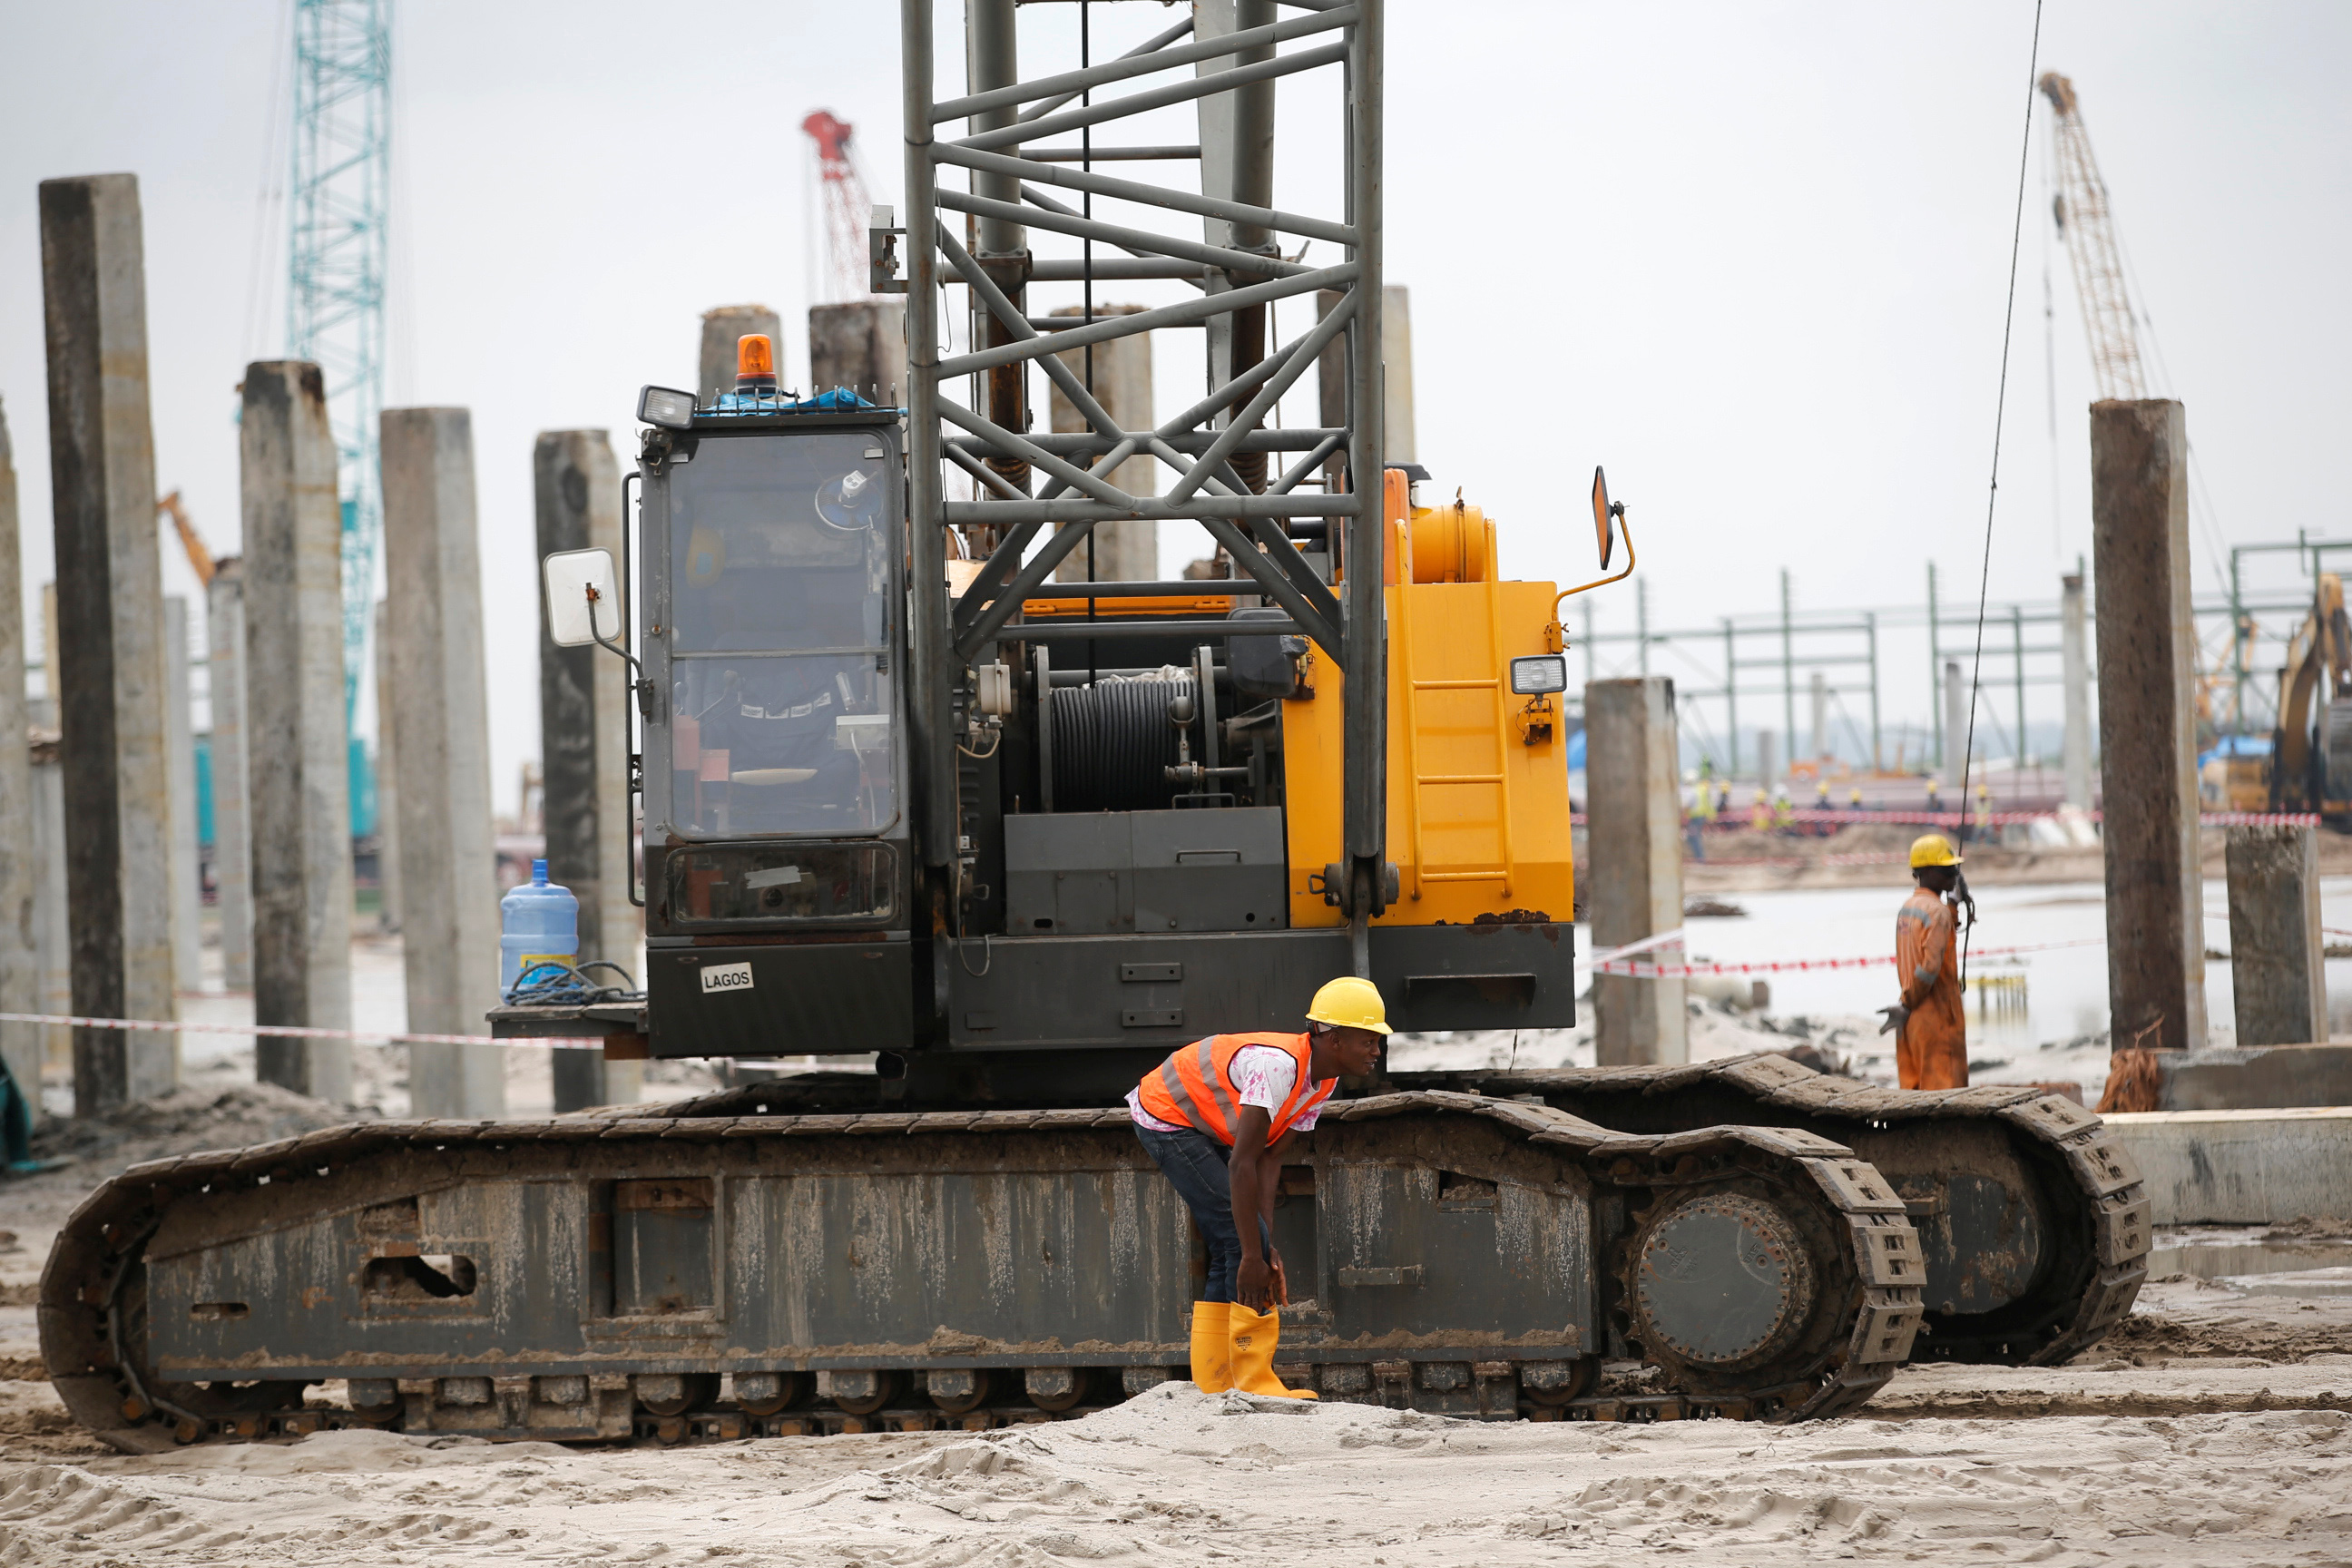 A construction worker is seen near a machine on a site during a facility tour at the proposed Dangote oil refinery site near Akodo beach in the outskirt of Nigeria's commercial capital Lagos June 25, 2016. REUTERS/Akintunde Akinleye - RTX2I77I